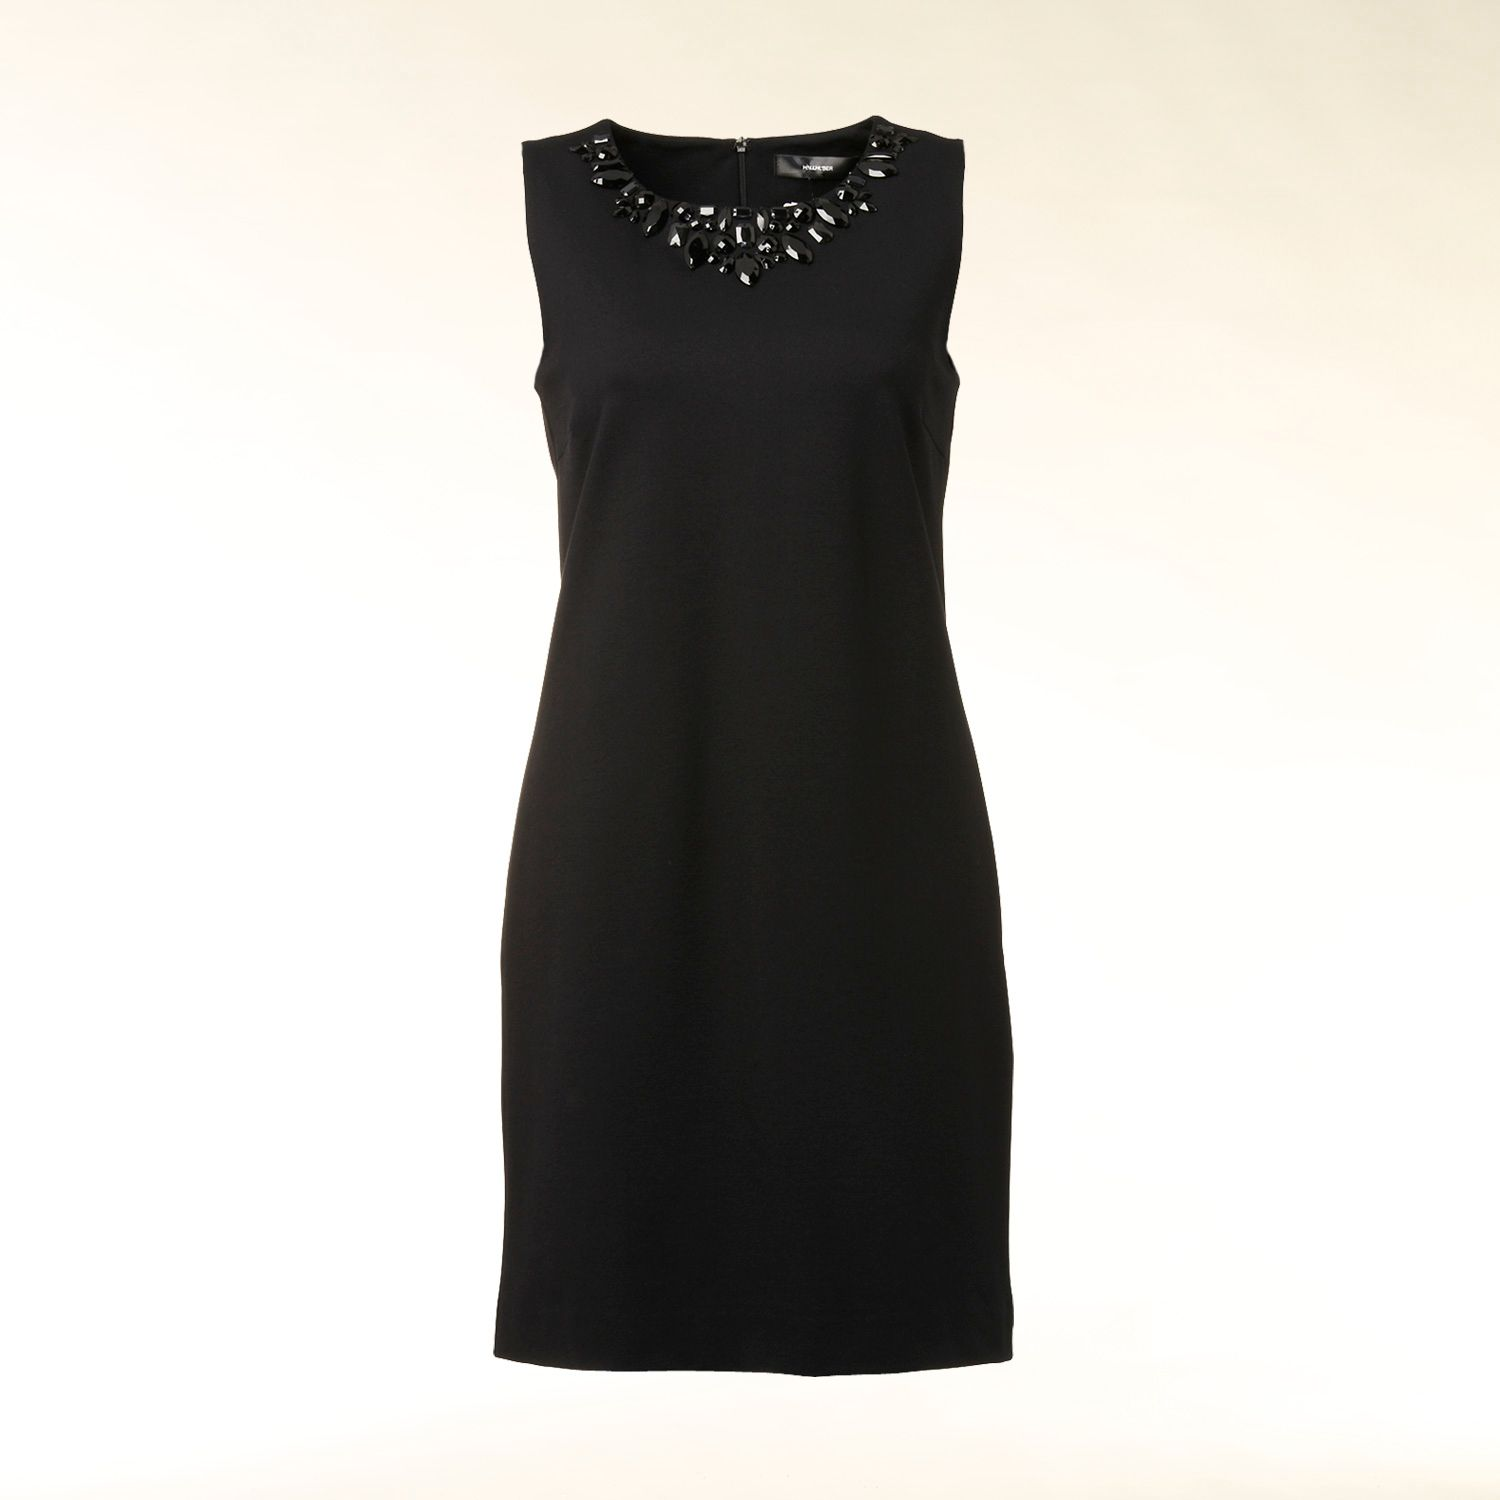 Sleeveless embellished neckline dress